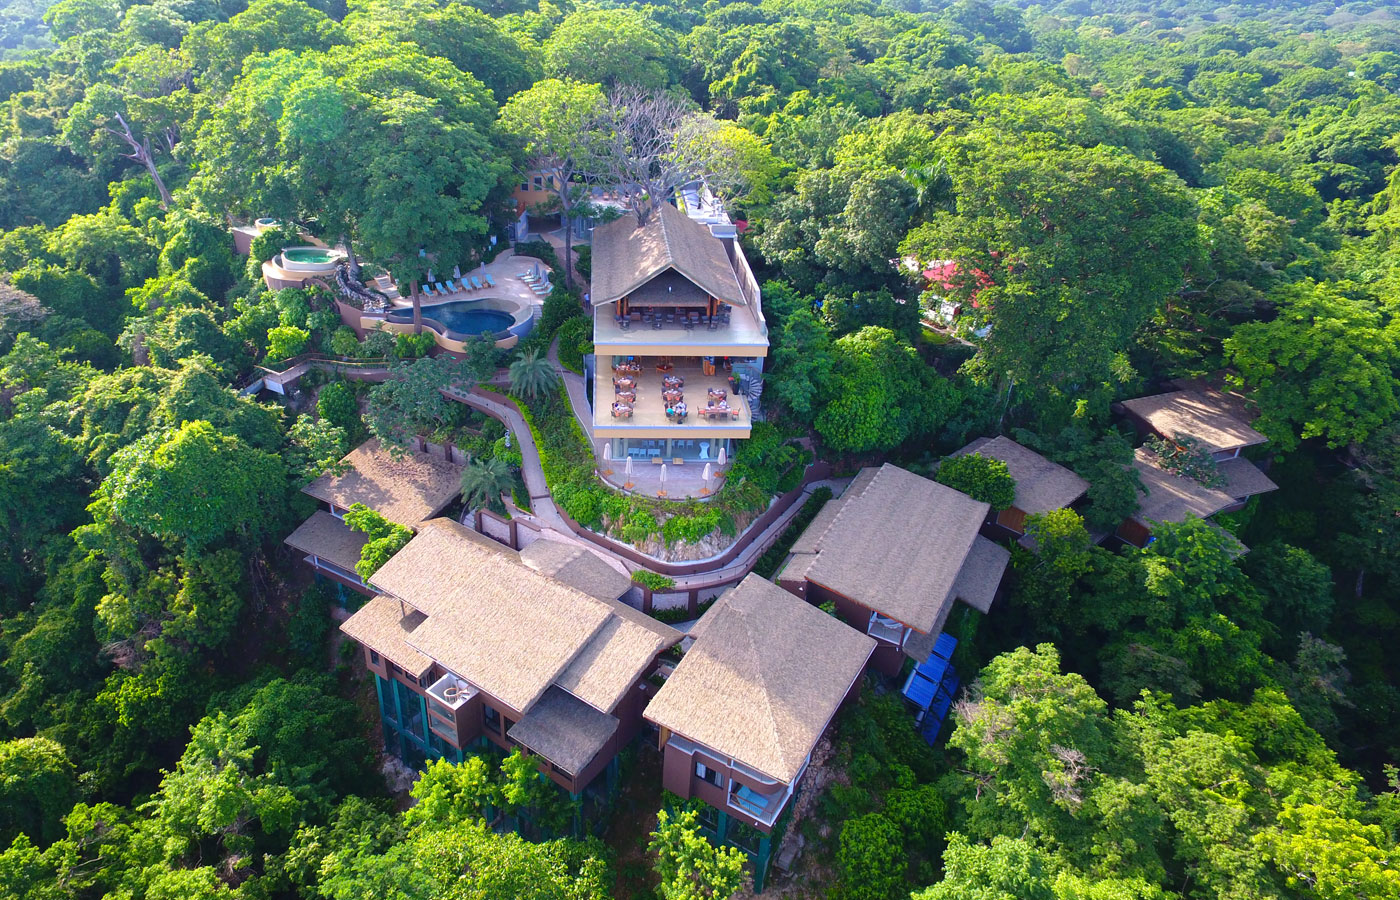 Aerial view of Lagarta Lodge